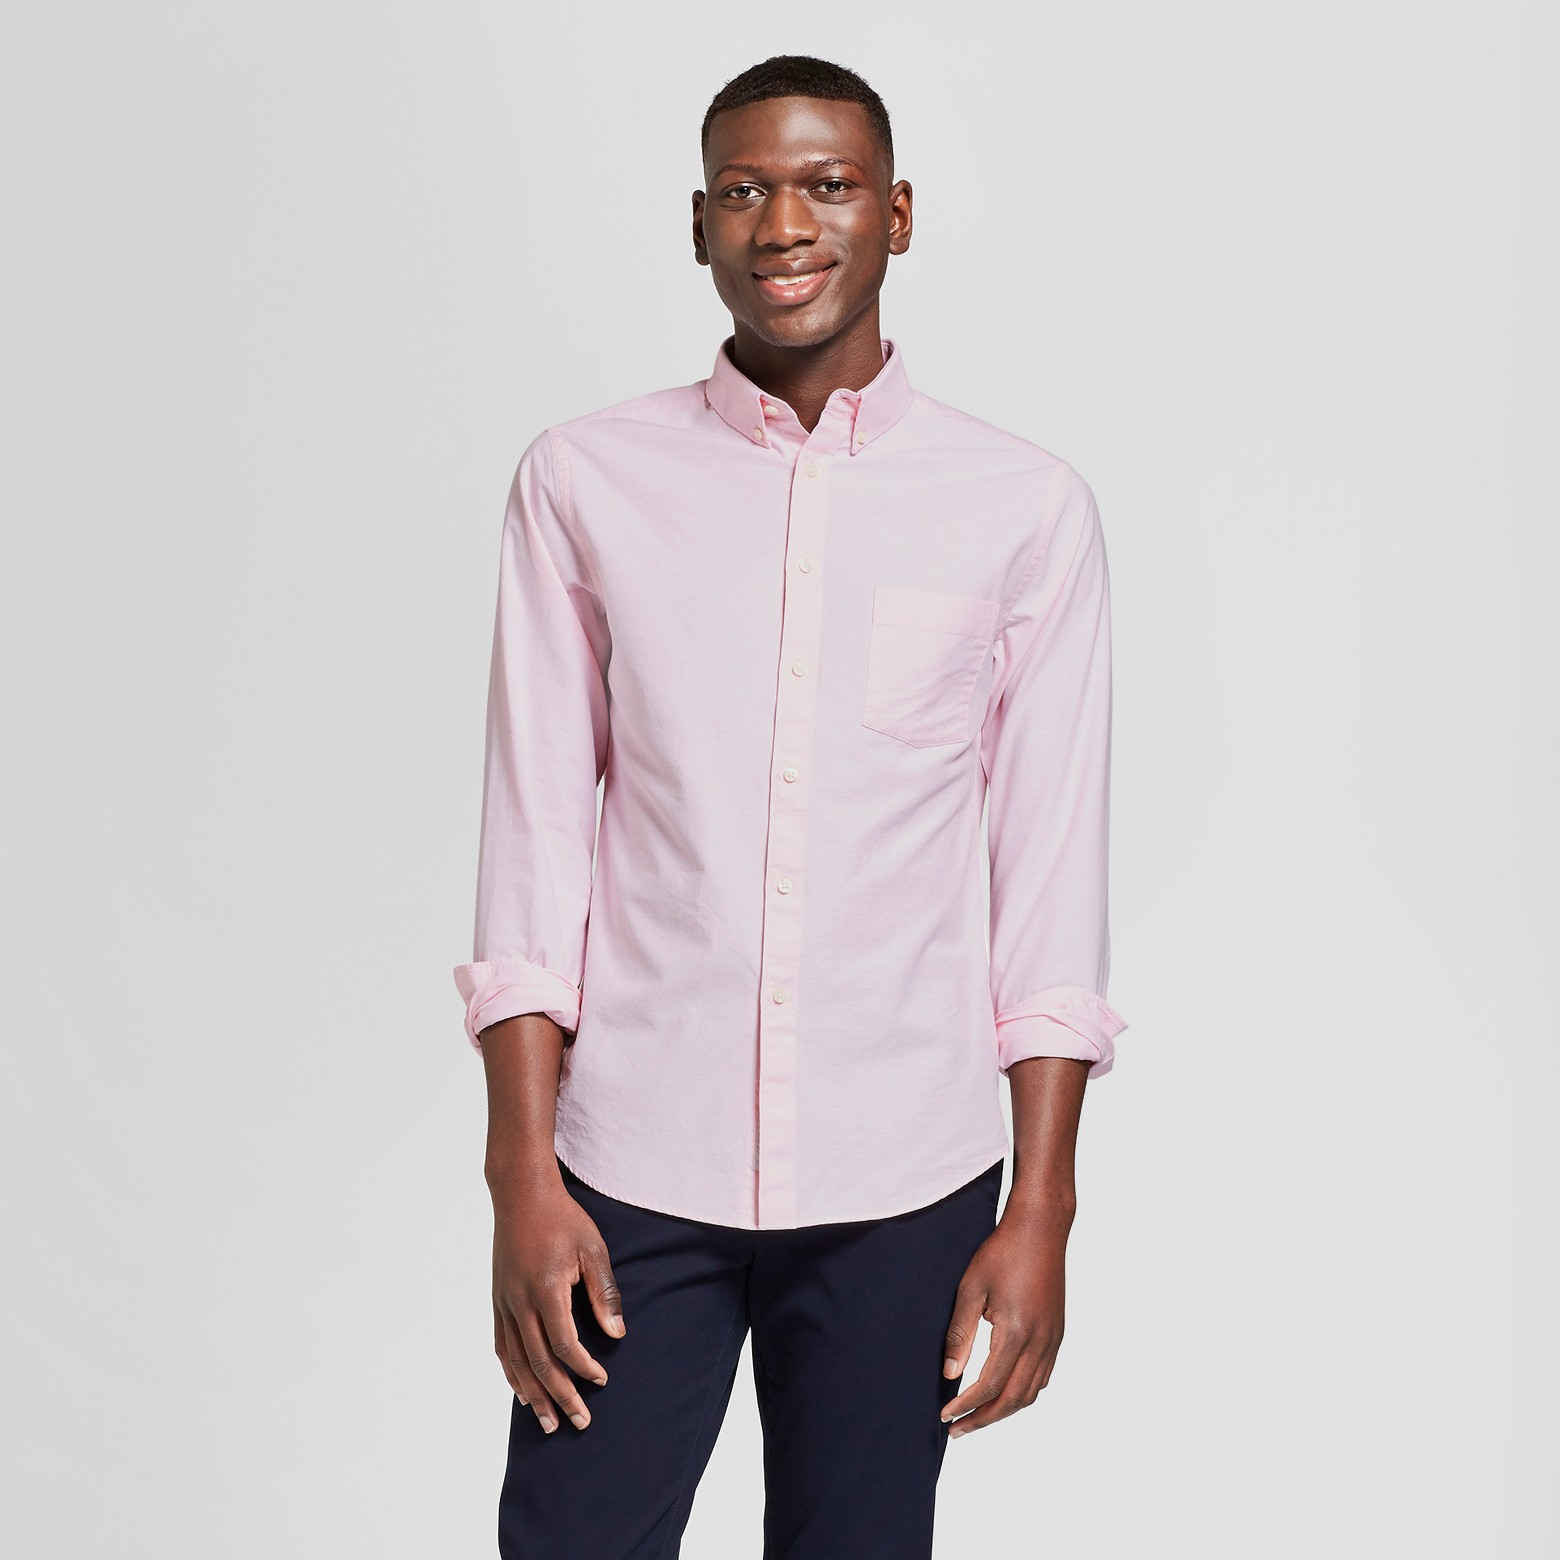 Man wearing a salmon button up with black pants.